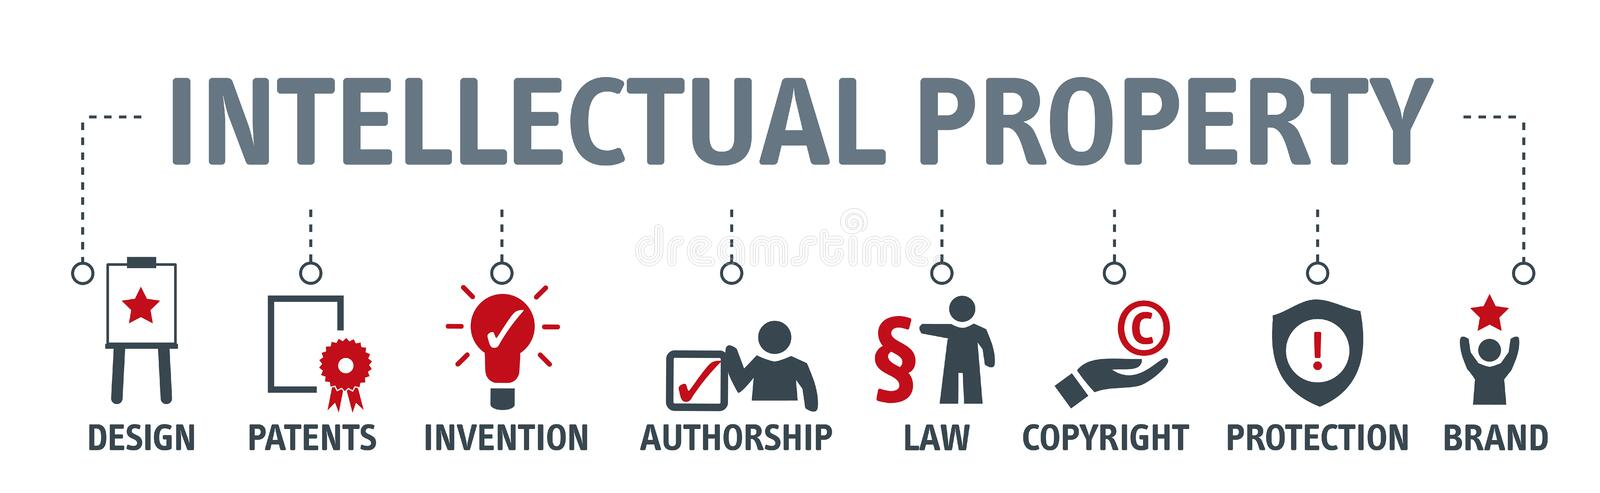 Intellectual Property concept vector illustration stock illustration